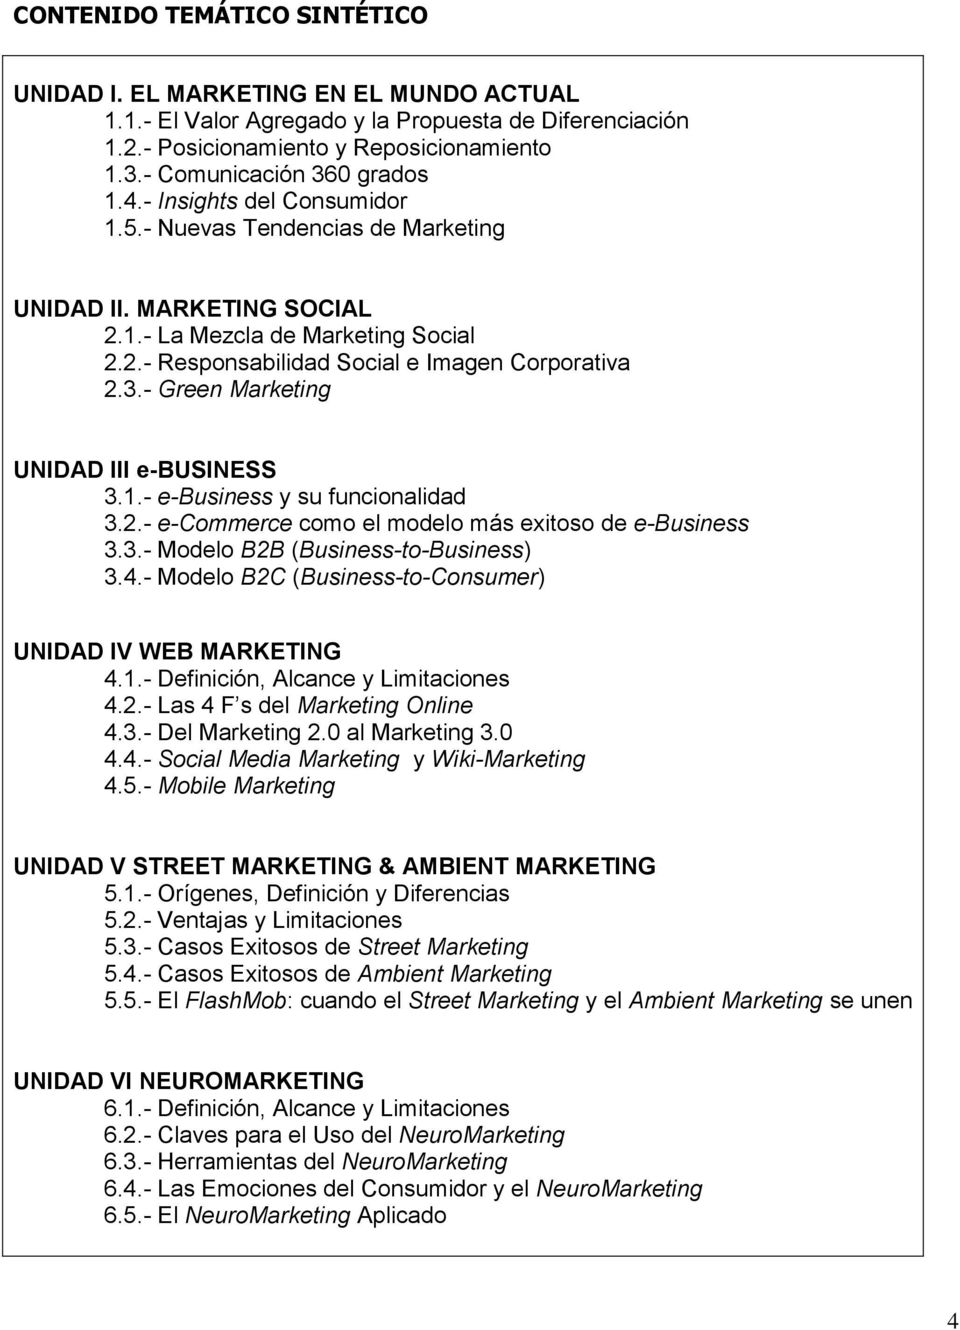 3.- Green Marketing UNIDAD III e-business 3.1.- e-business y su funcionalidad 3.2.- e-commerce como el modelo más exitoso de e-business 3.3.- Modelo B2B (Business-to-Business) 3.4.